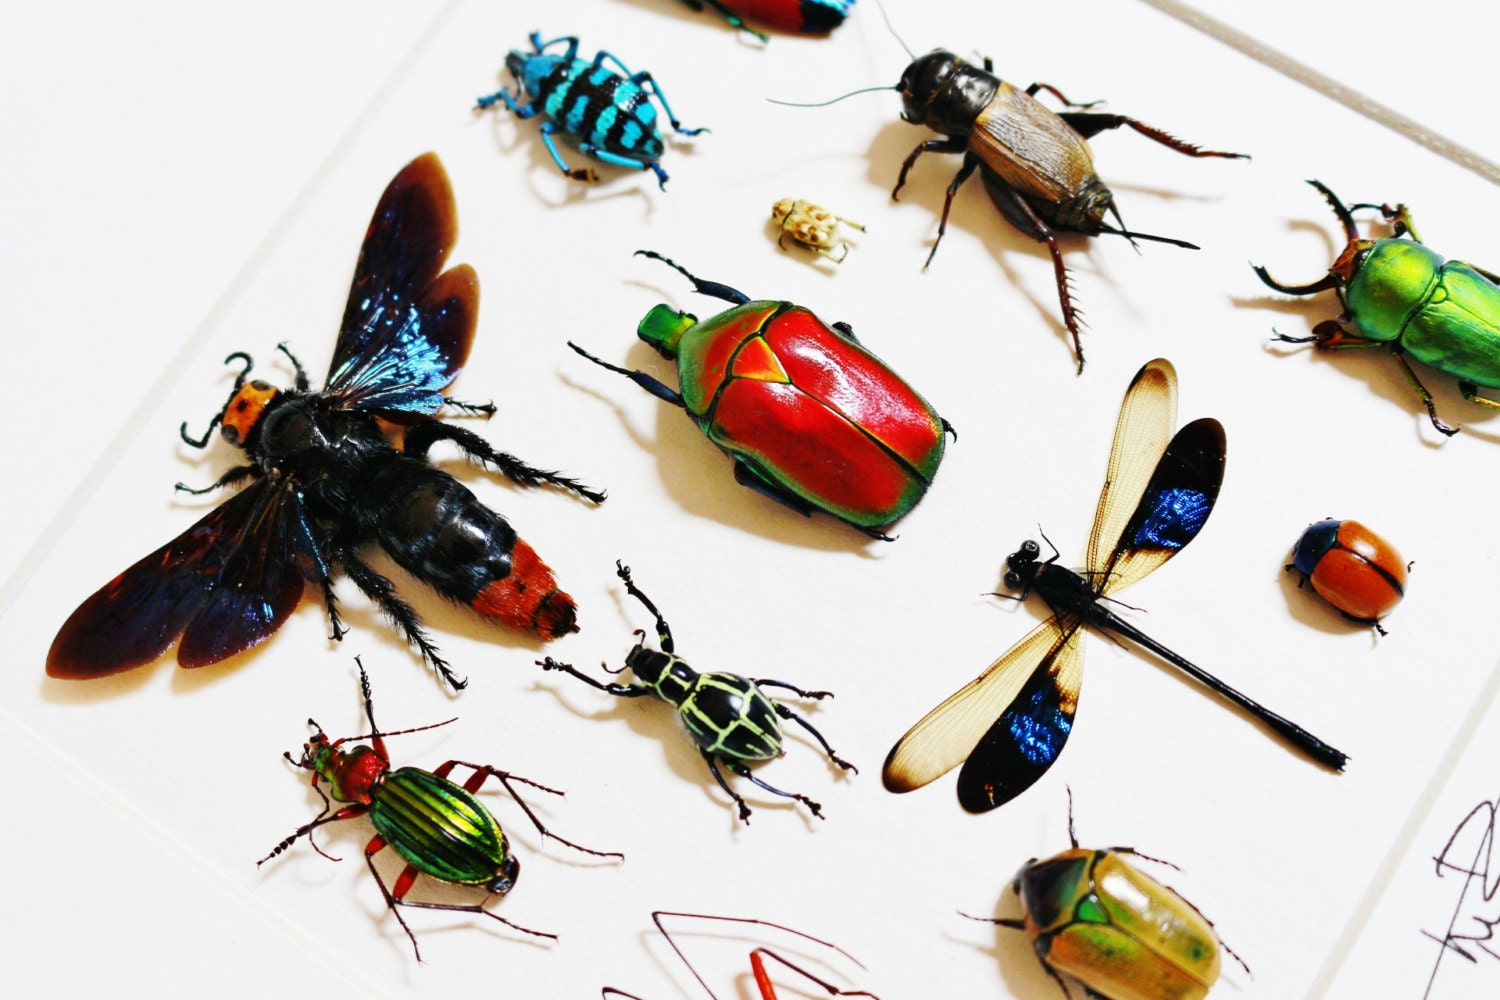 Real insect art